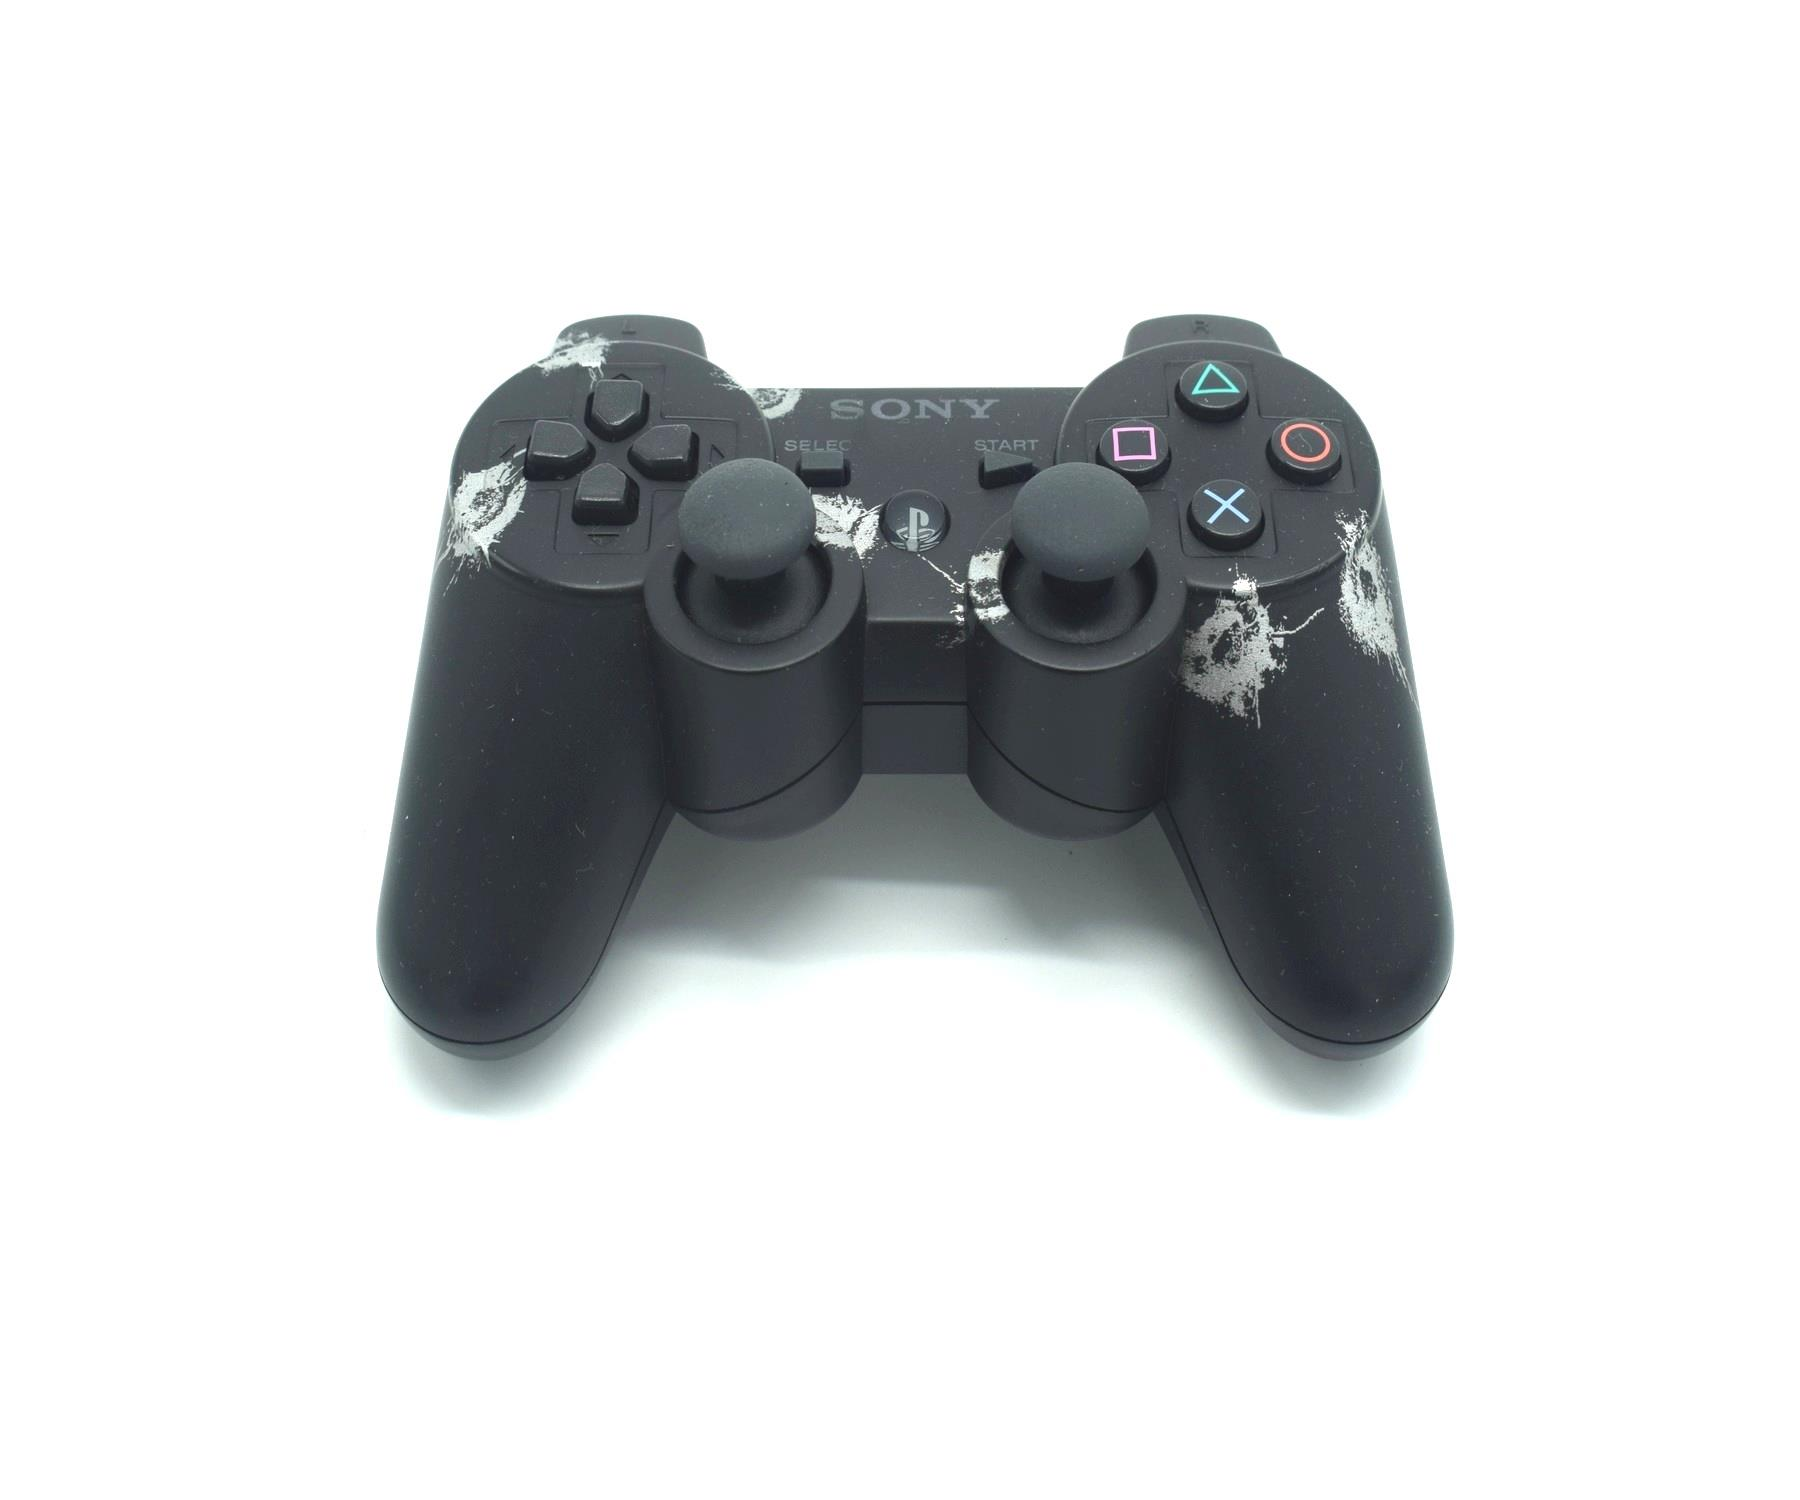 Official-Original-Sony-Playstation-Dual-Shock-3-PS3-Controller-Multiple-Colours thumbnail 54